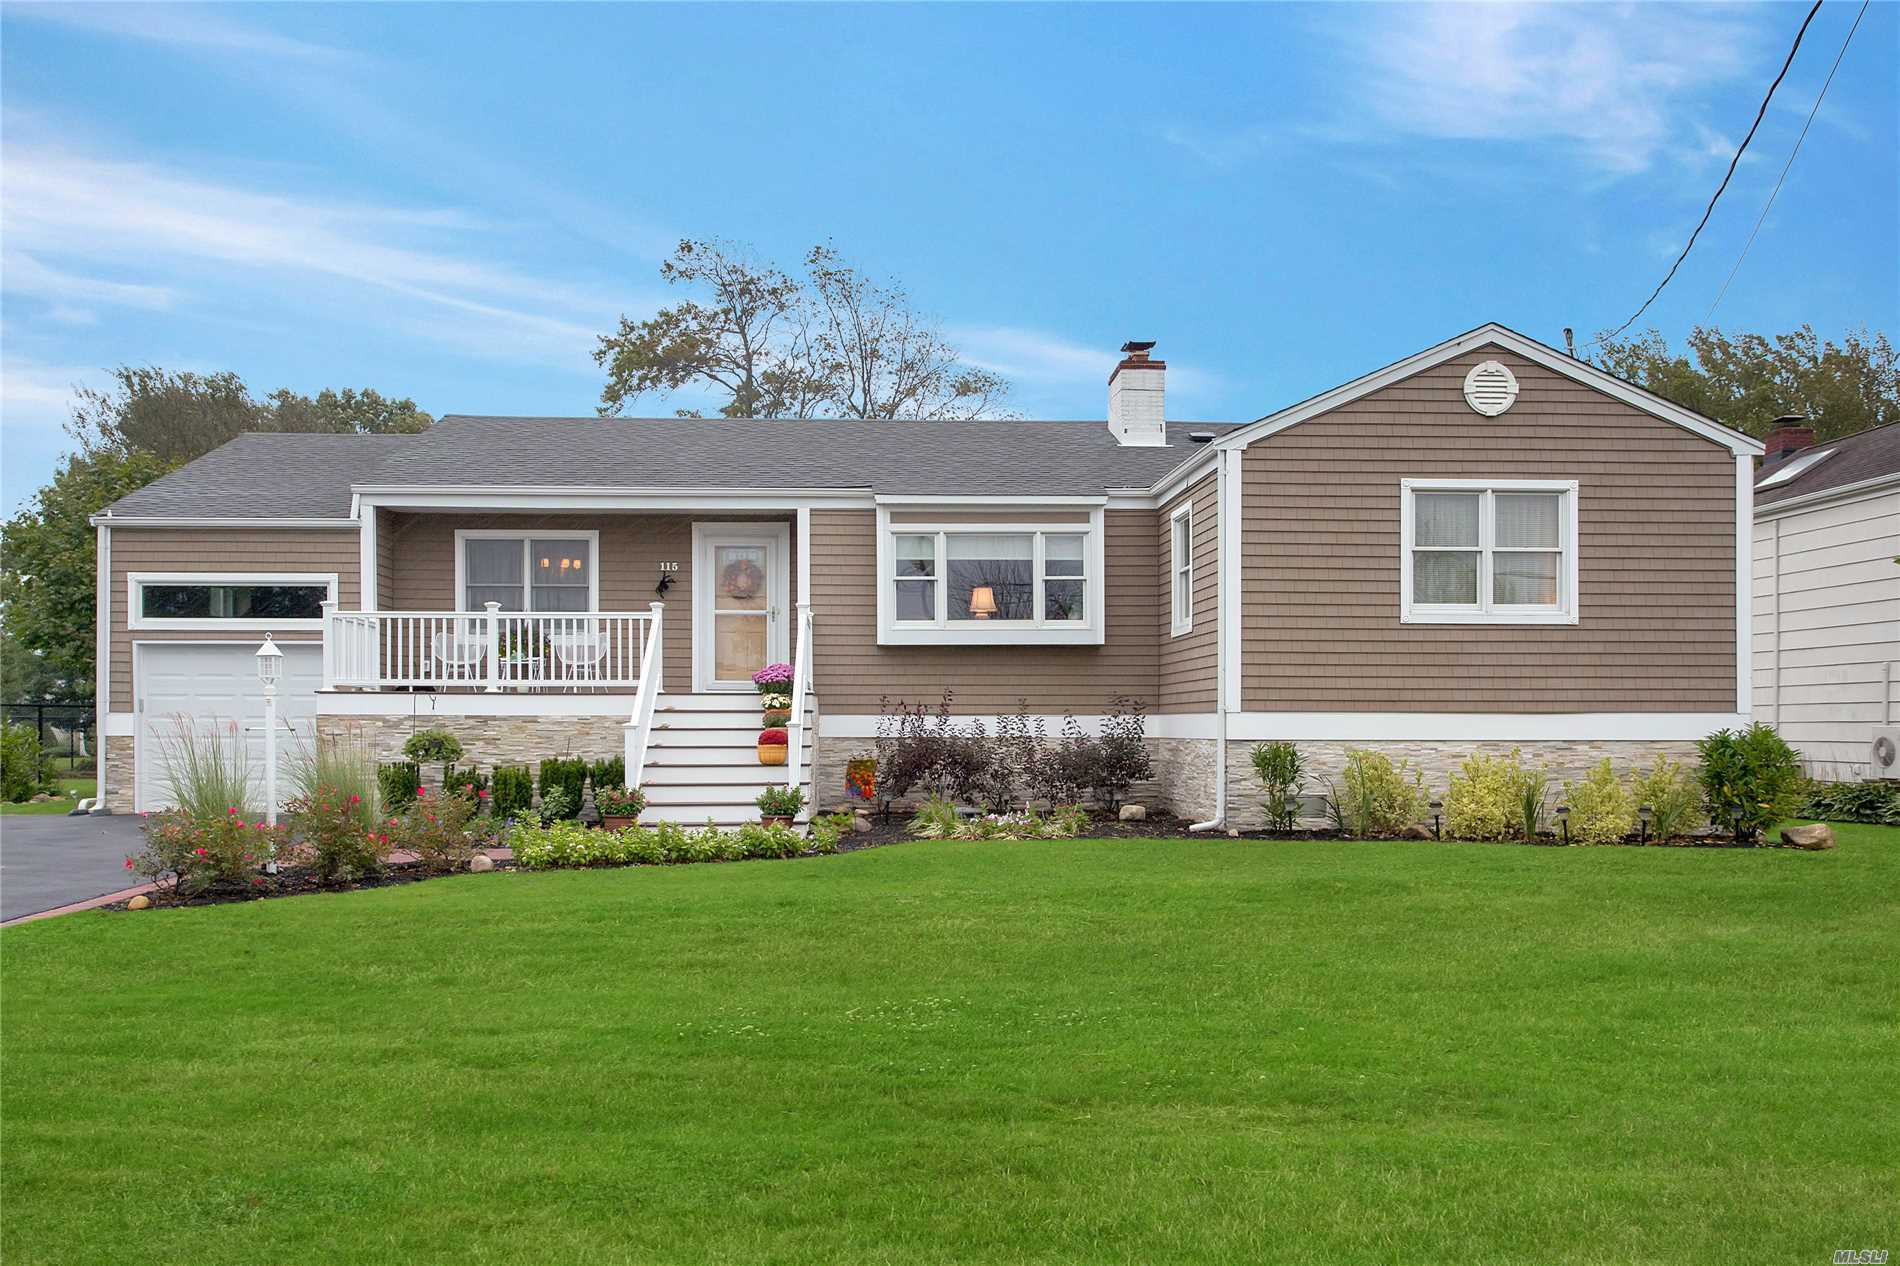 Charming, Raised & Renovated C-H Ranch On 90' x 150' Landscaped Lot w/2, 066 Sf in Sequams Colony w/Assoc Docking. Ef, Lr w/Fpl, Fdr, Eik, Den w/Sliders to Deck, Mbr w/WIC & Fbth, 2nd Br, 3rd Br, Full Bath. Laundry Rm w/Half Bath. 1-C Att Garage w/Interior Access. House was Raised After Sandy w/New Vinyl Siding, Windows, Kitchen & Baths. Flood Insurance Is $550/Year. House Is Much Larger Than It Appears from the Front.